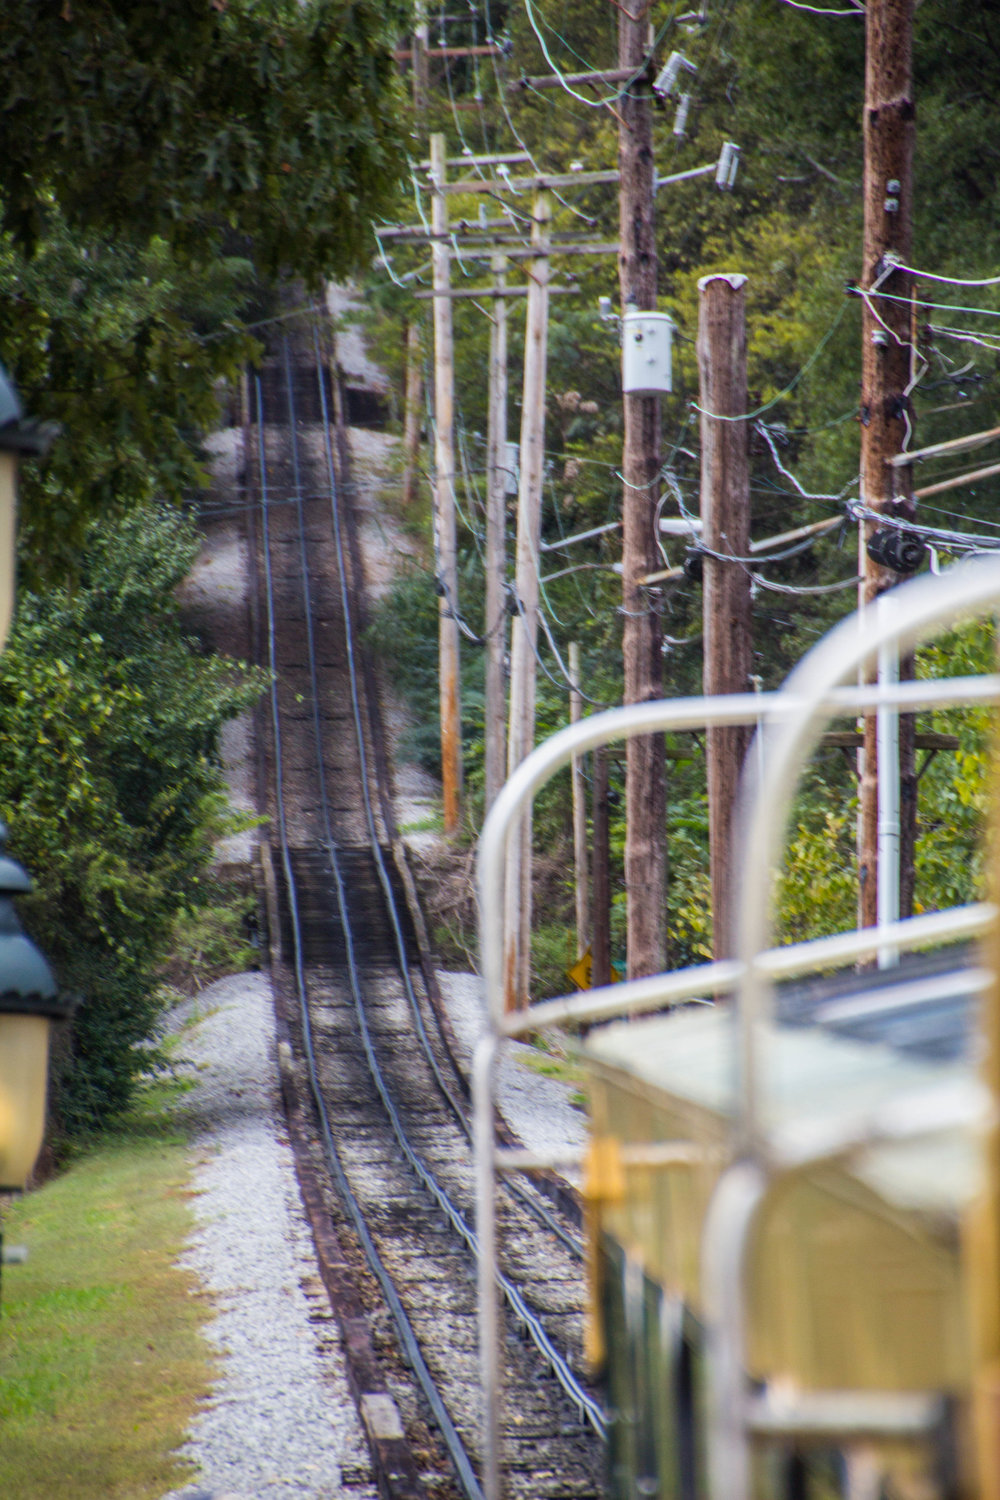 chattanooga-incline-railway-1.jpg